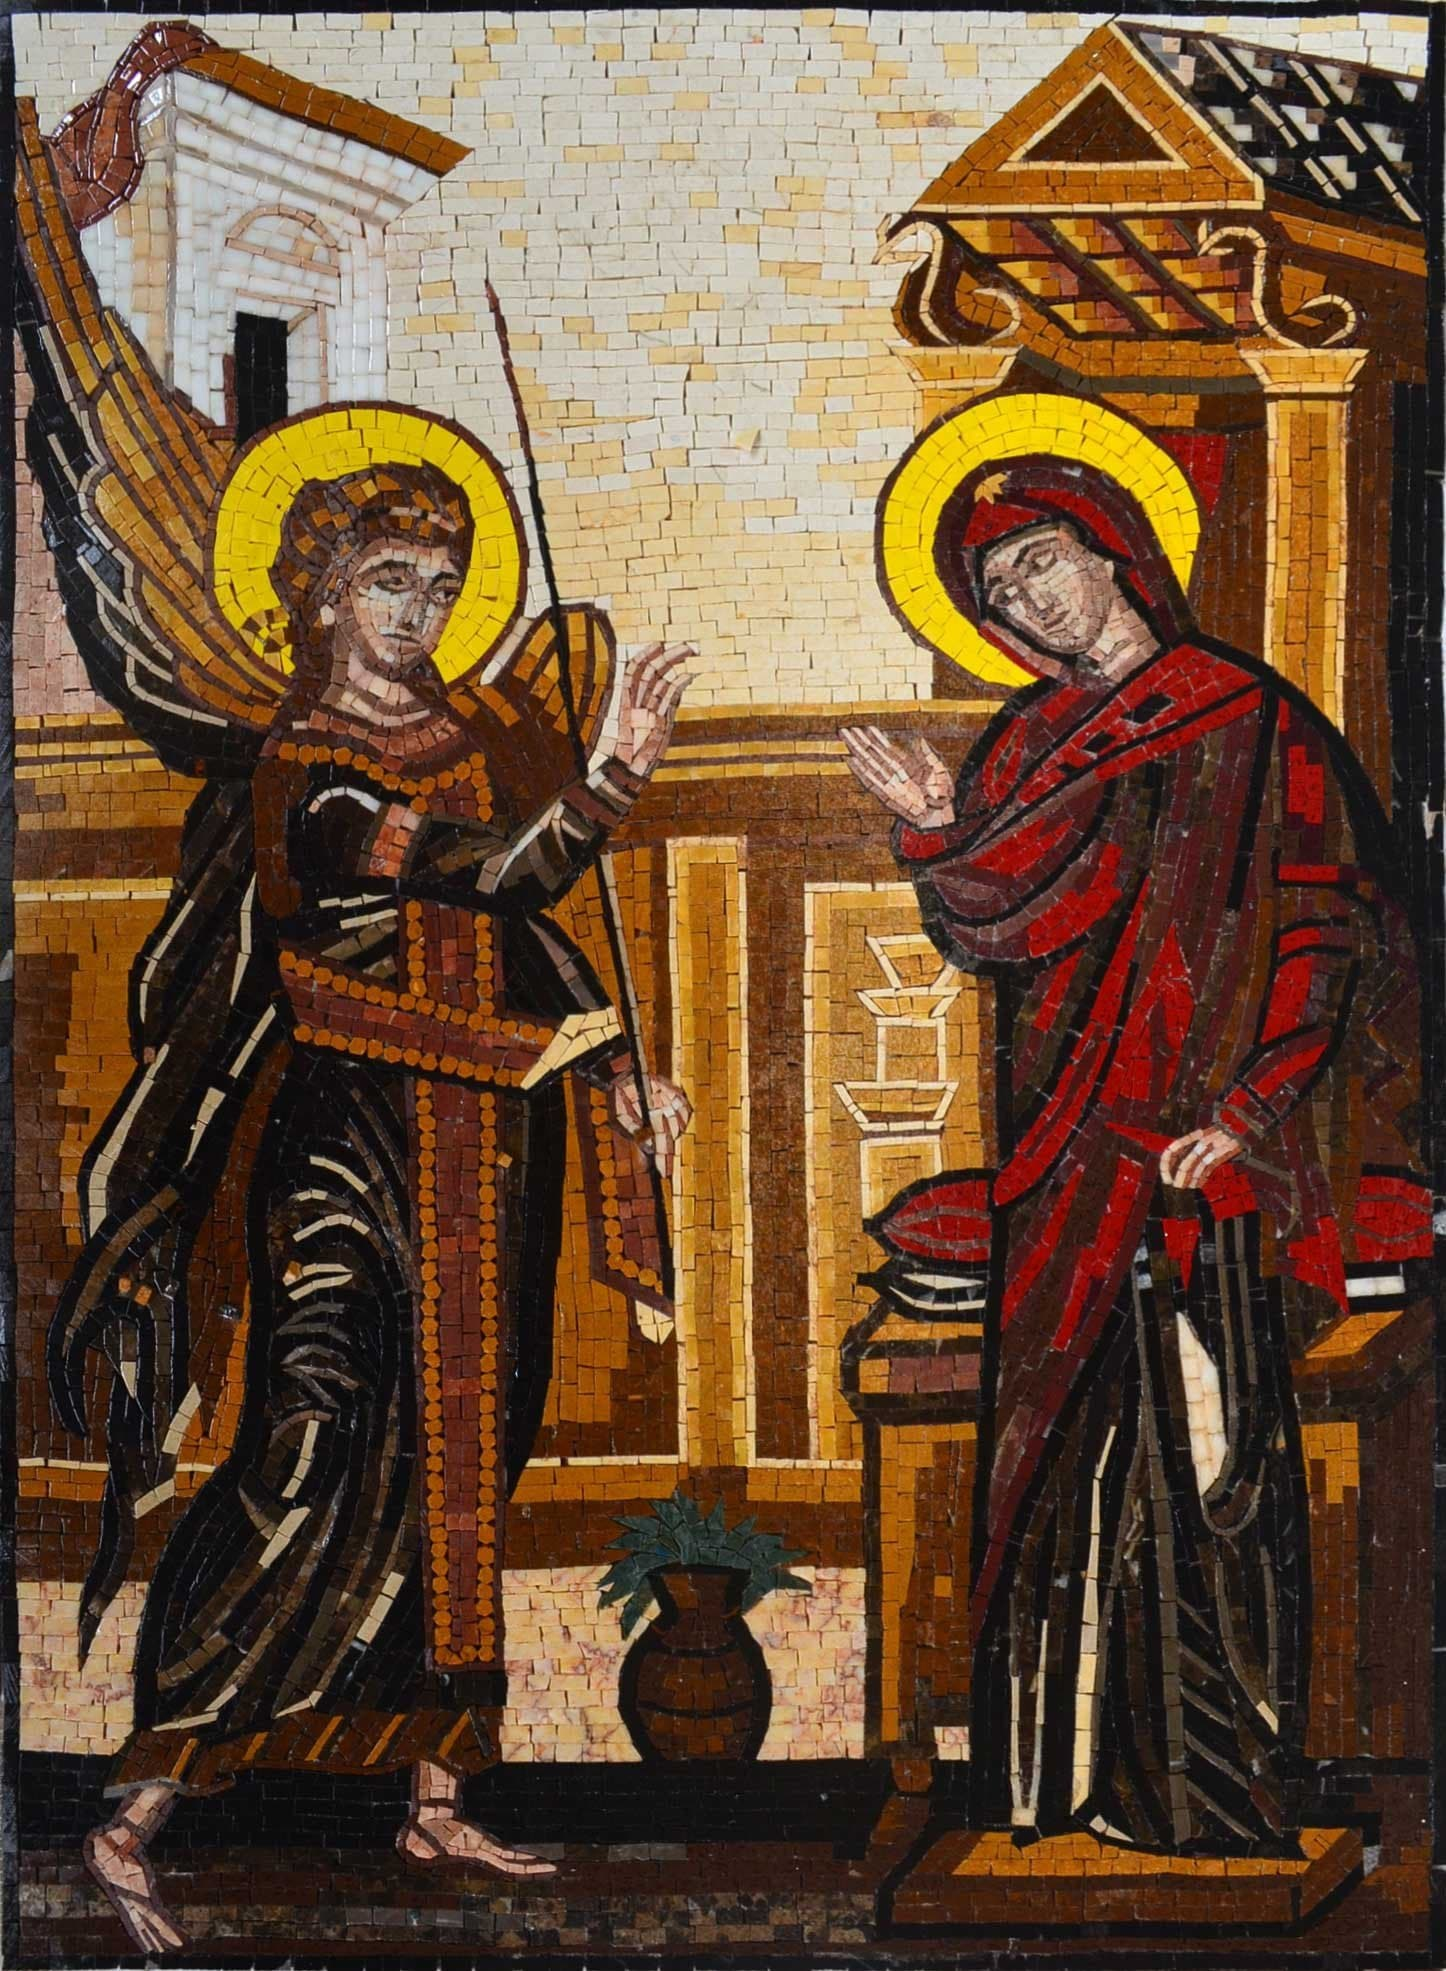 Dark Colors version of the Annunciation of Virgin Mary Mosaic